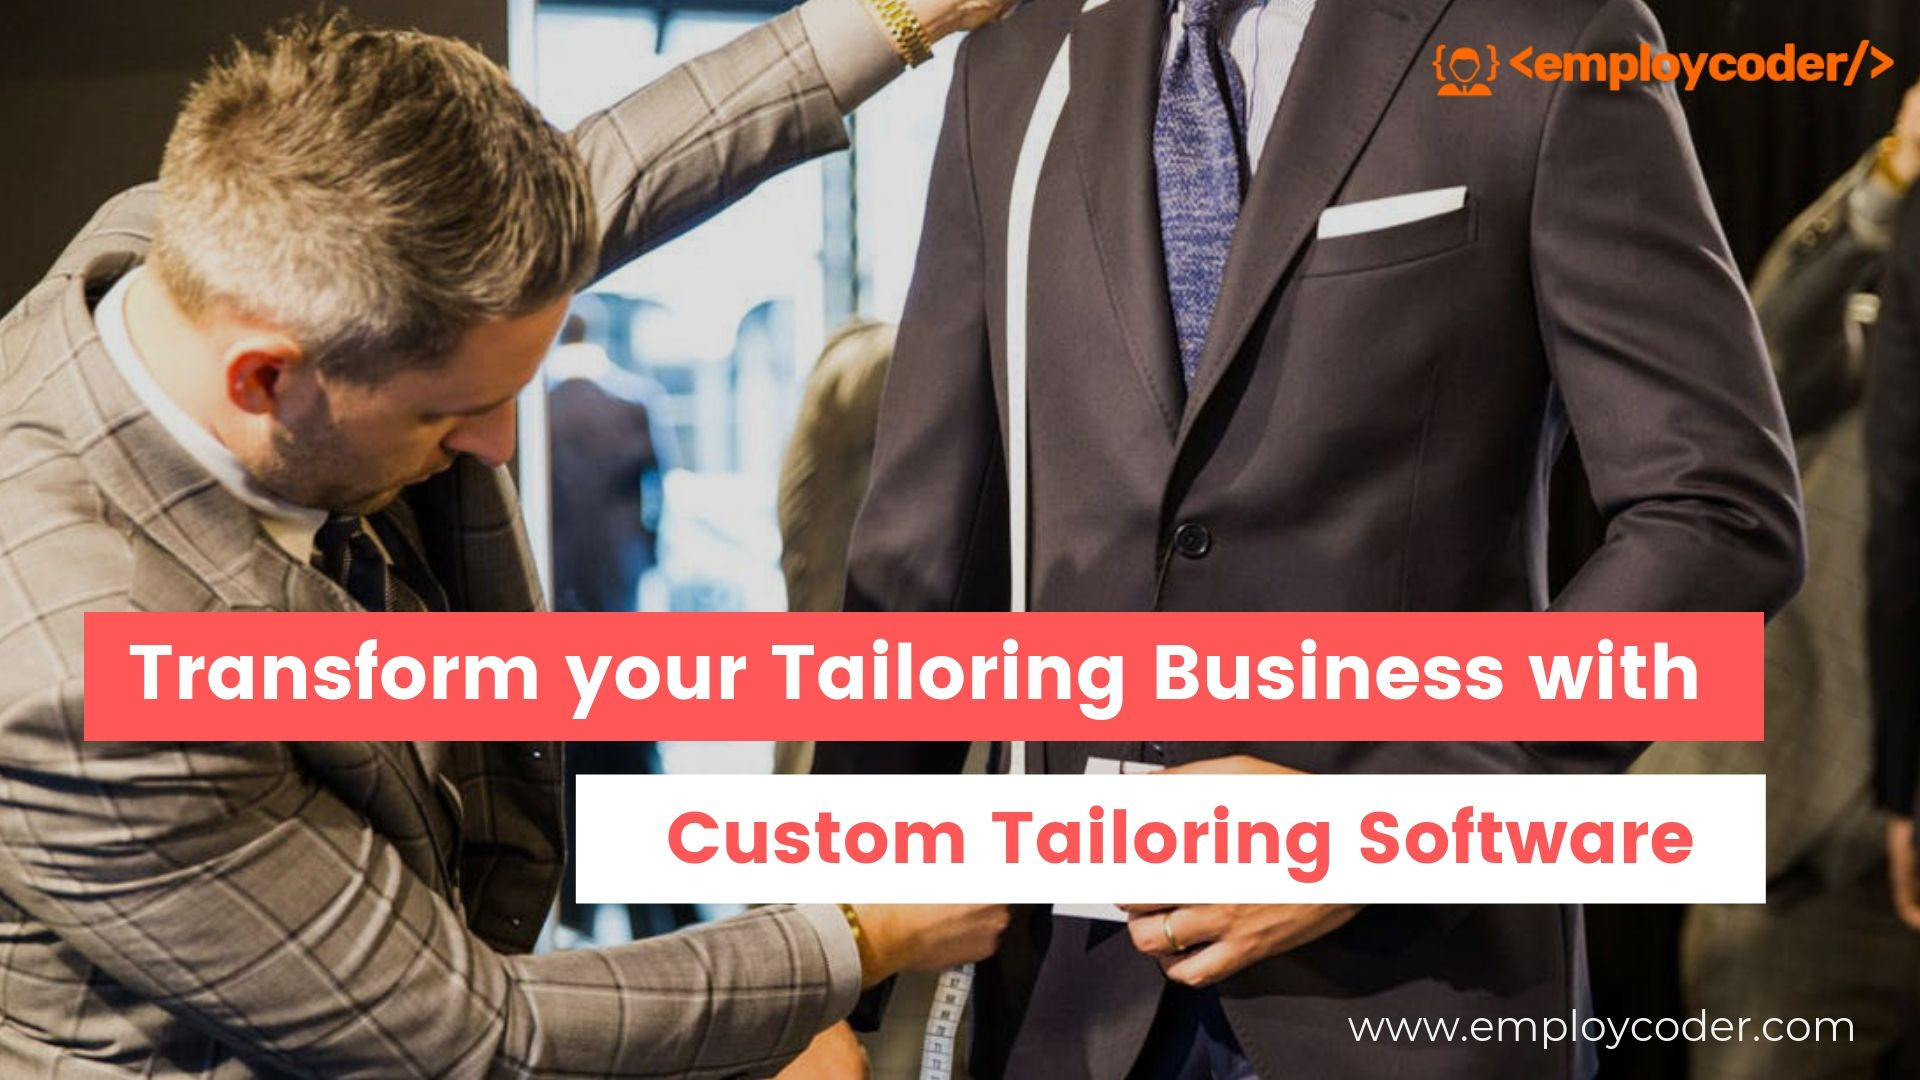 Transform your Tailoring Business with Custom Tailoring Software